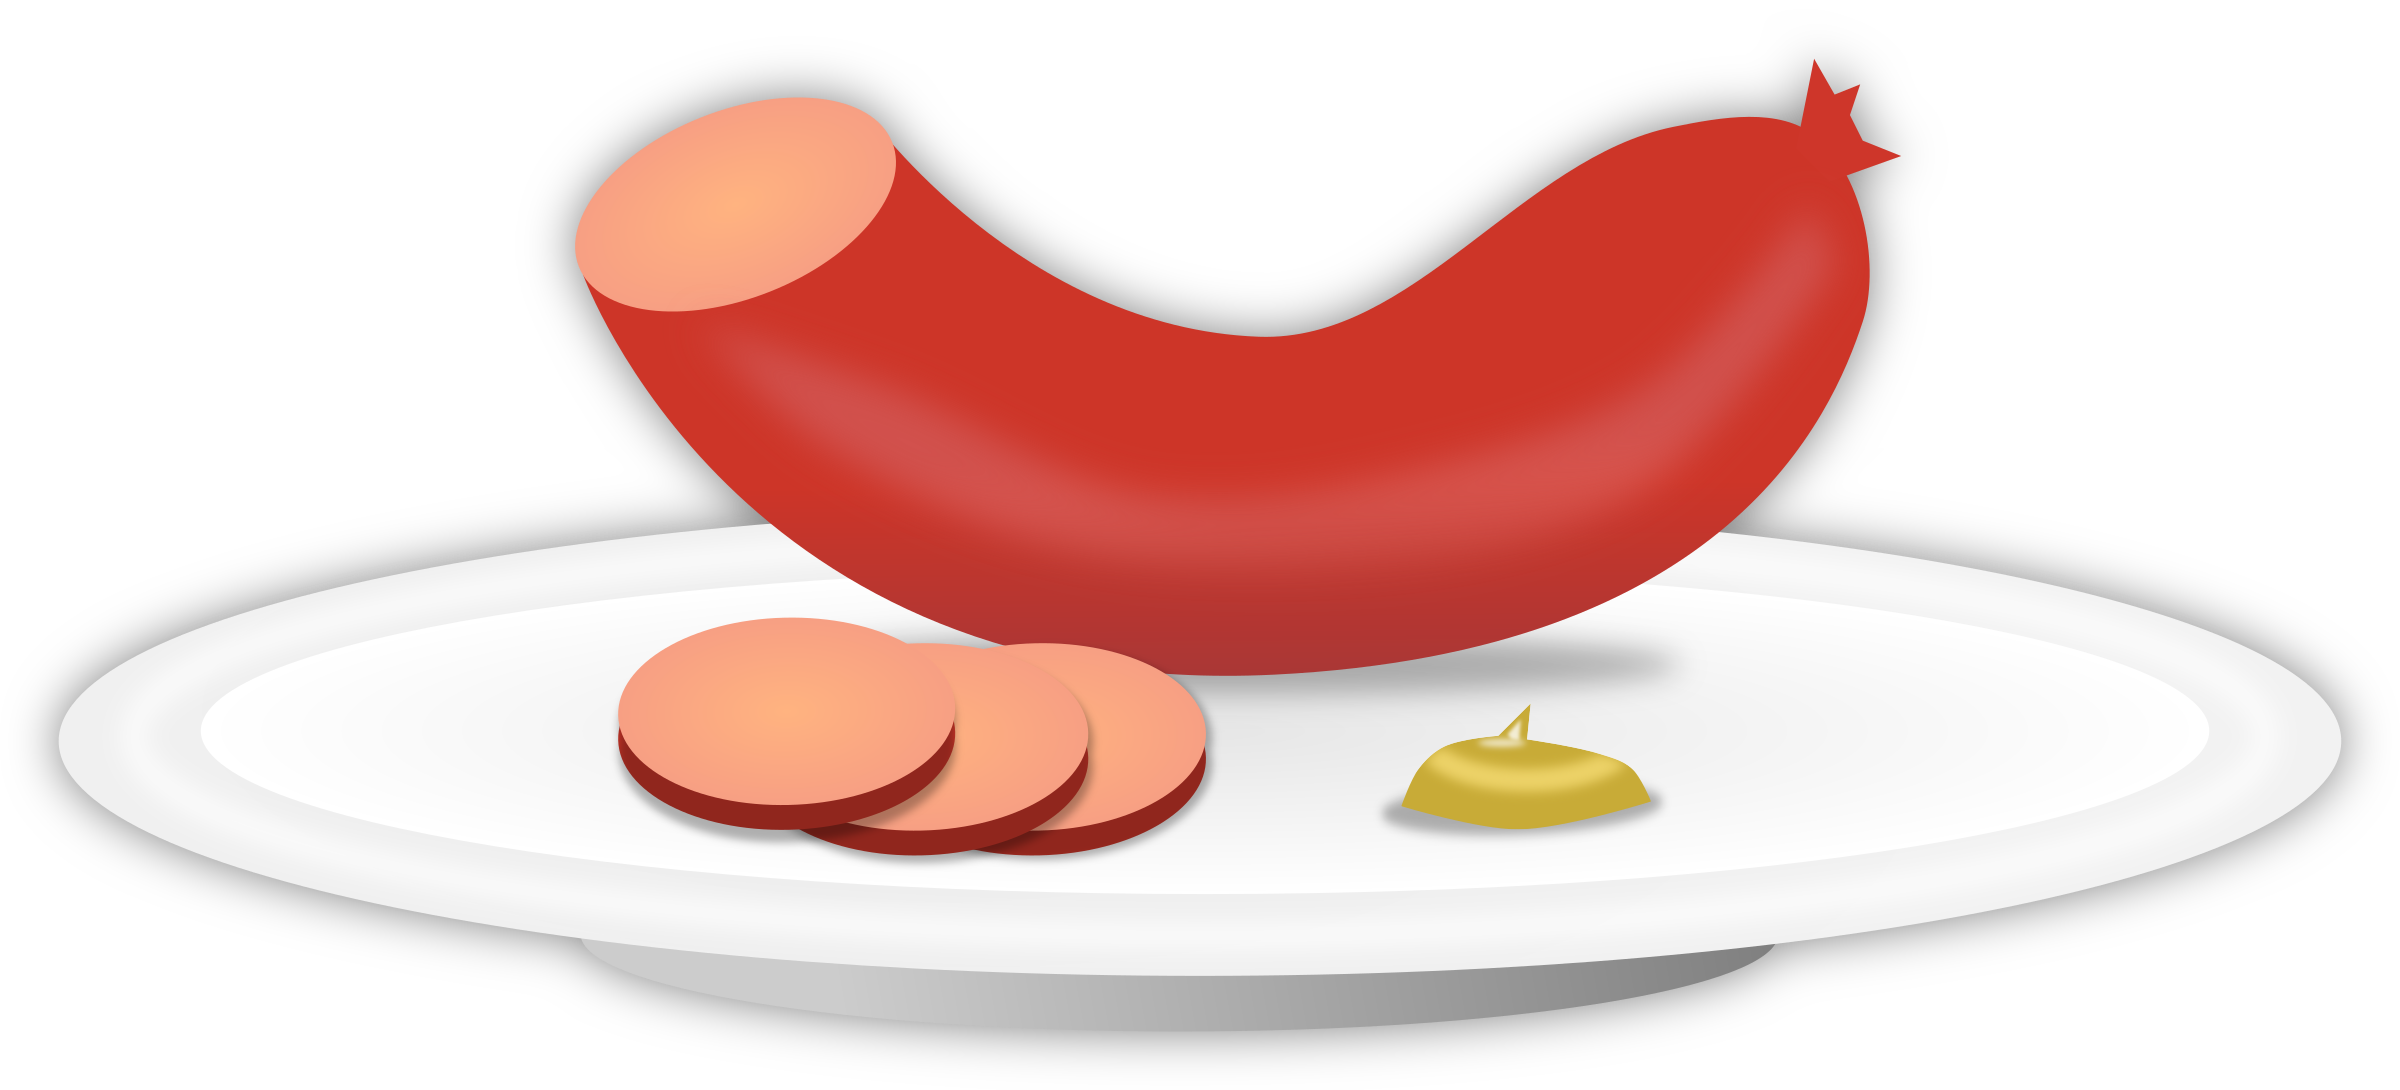 png freeuse library Clipart sausage. Big image png